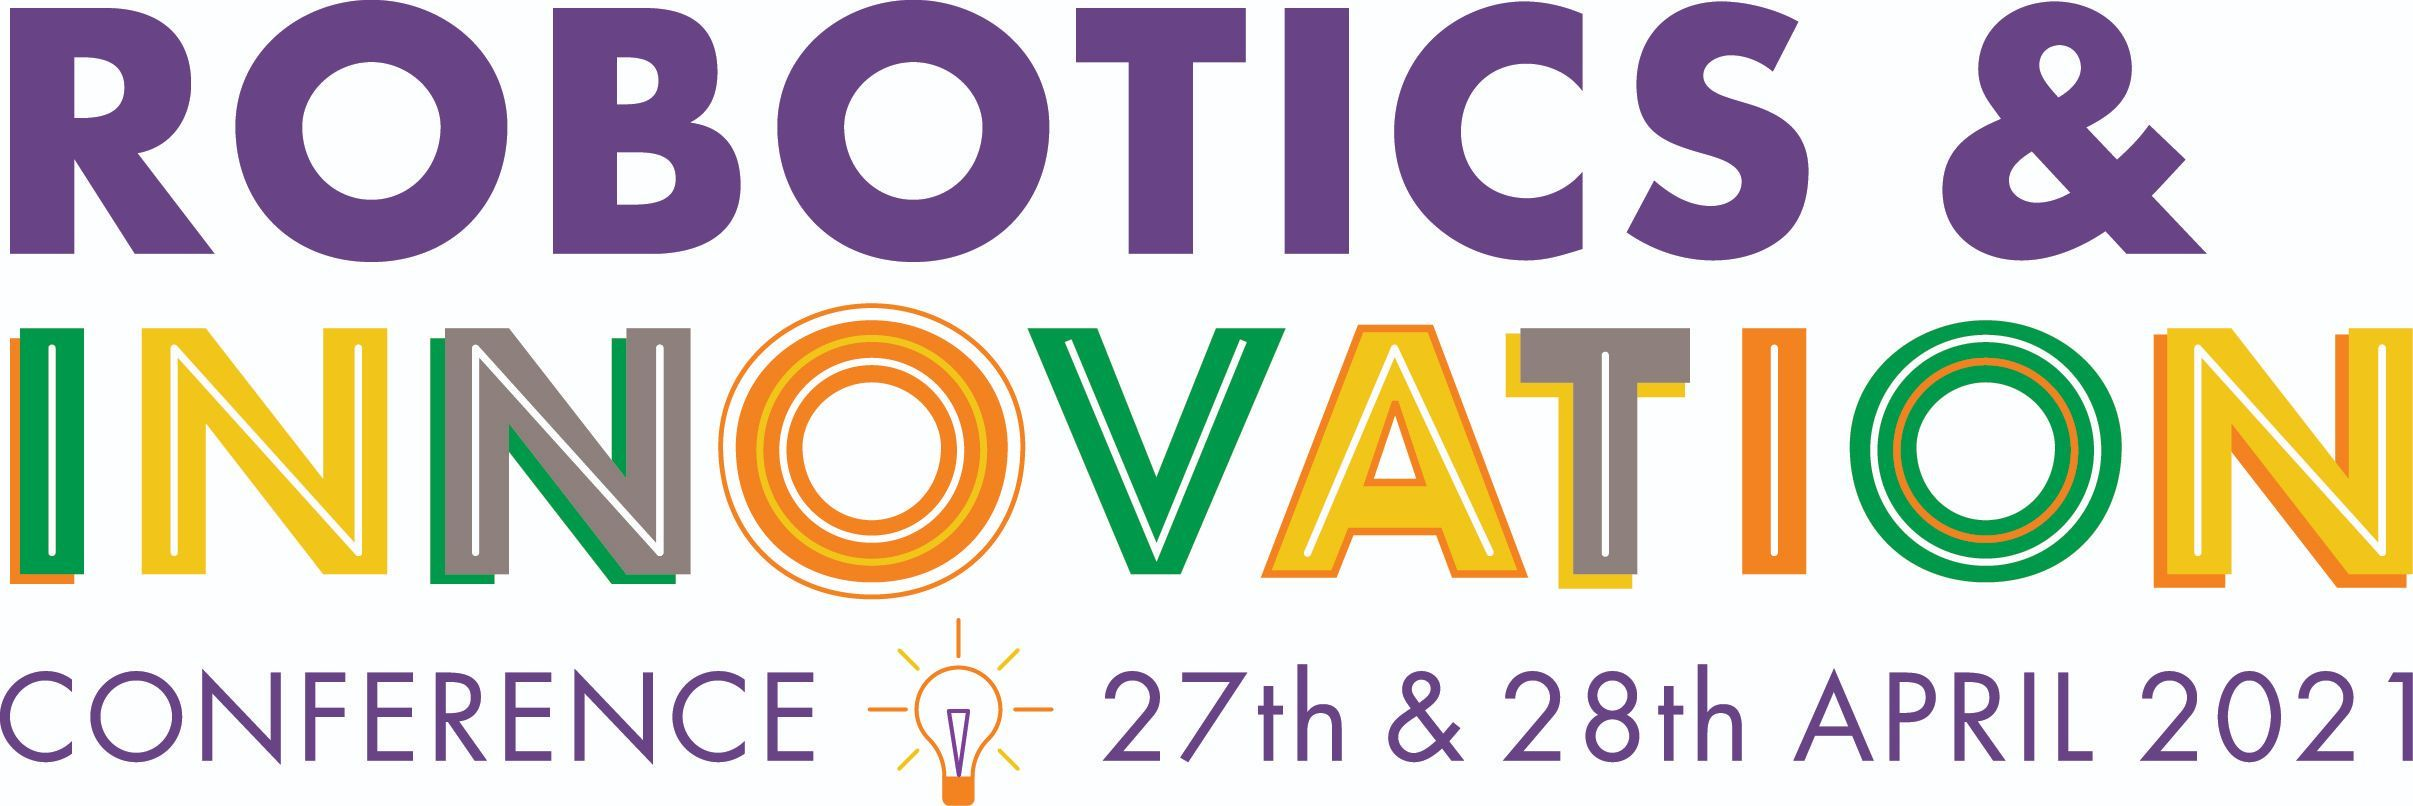 Robotics & Innovation Conference 2021